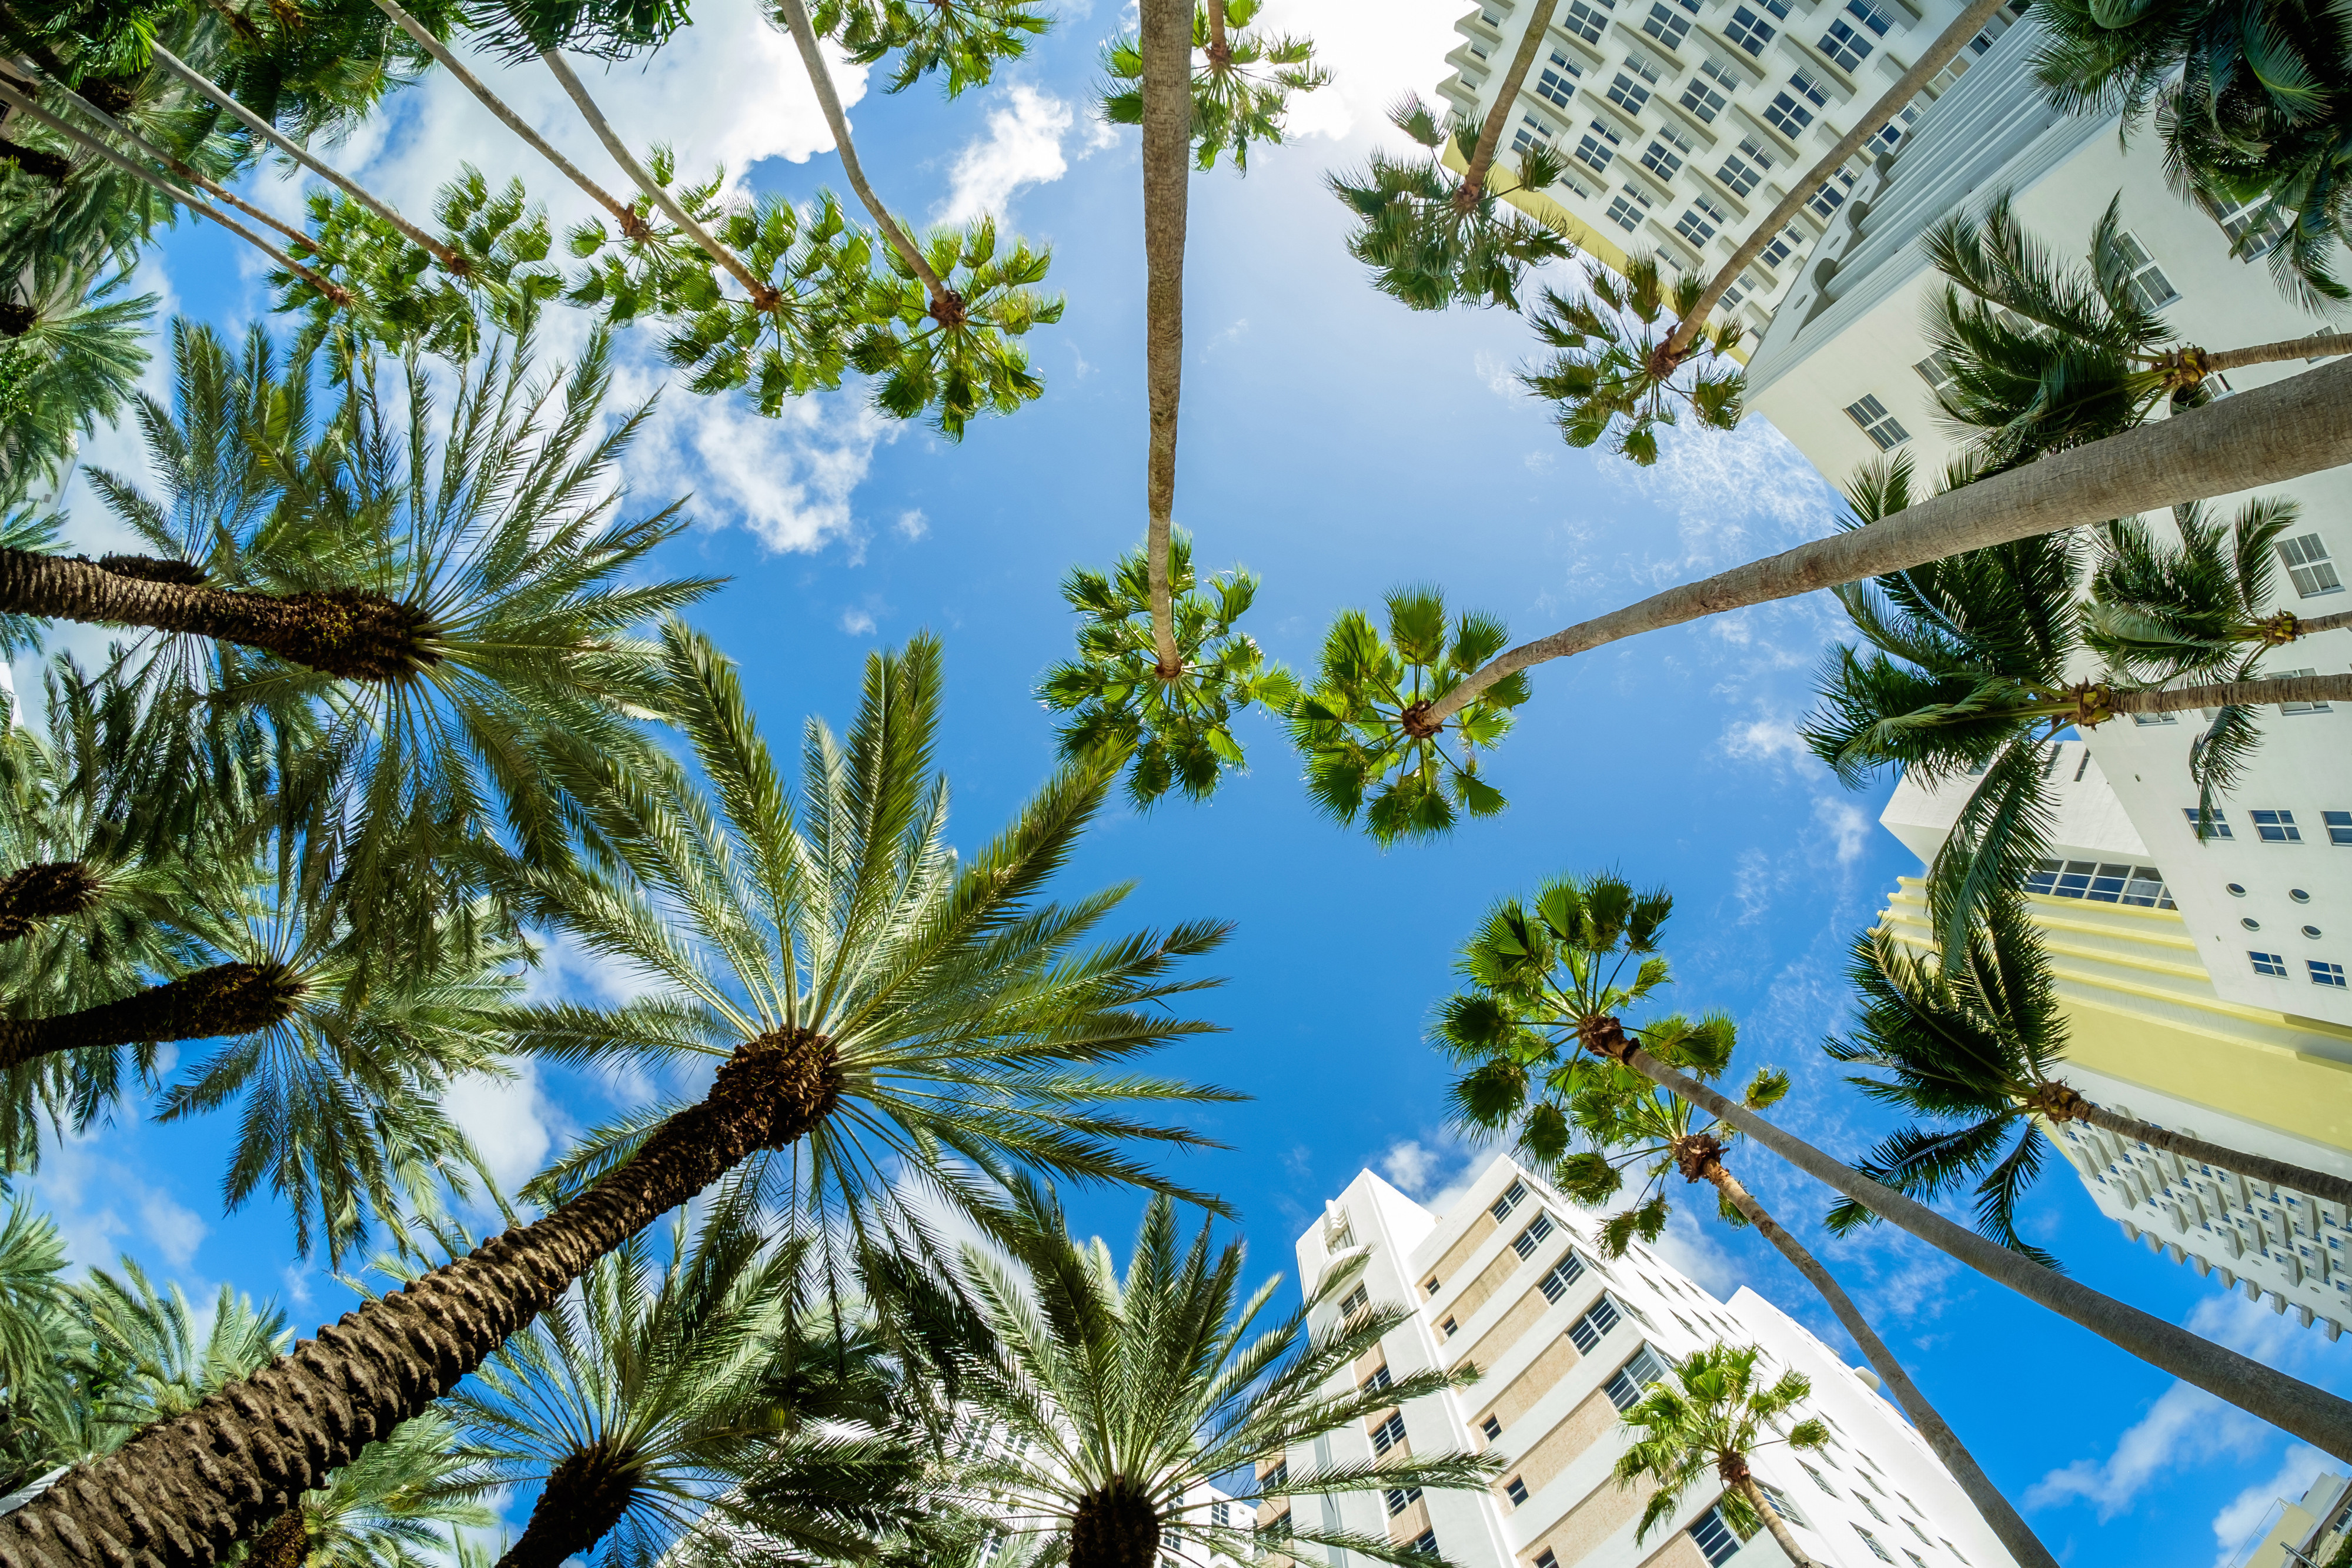 Blue Sky With Palm Trees And Buildings